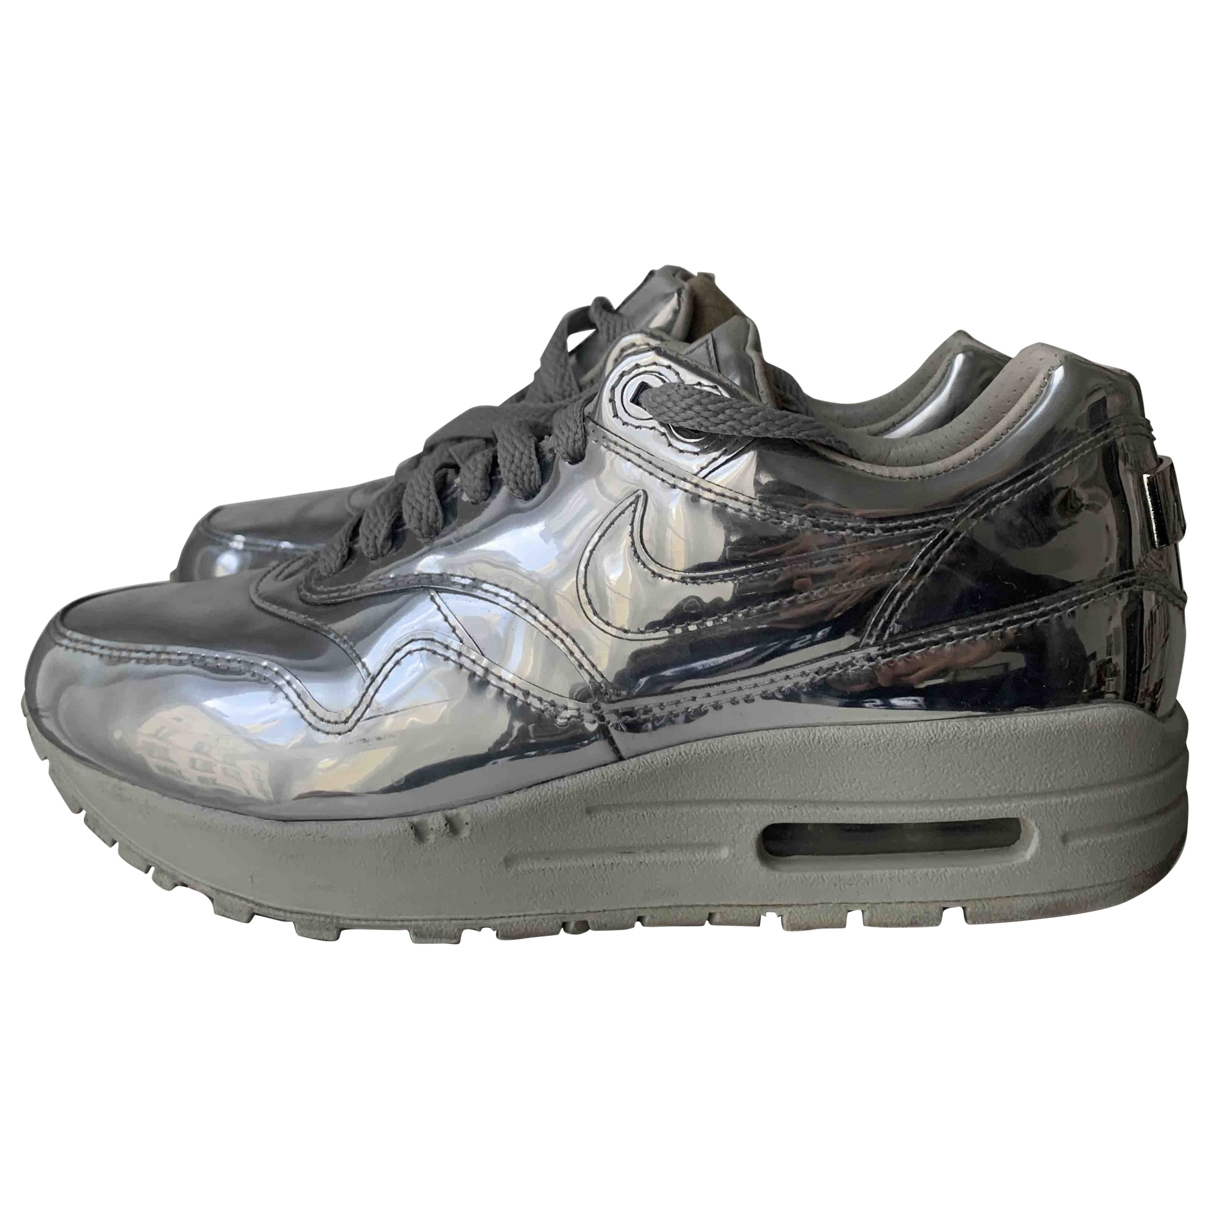 Nike Air Max 1 Silver Leather Trainers for Women 36.5 EU